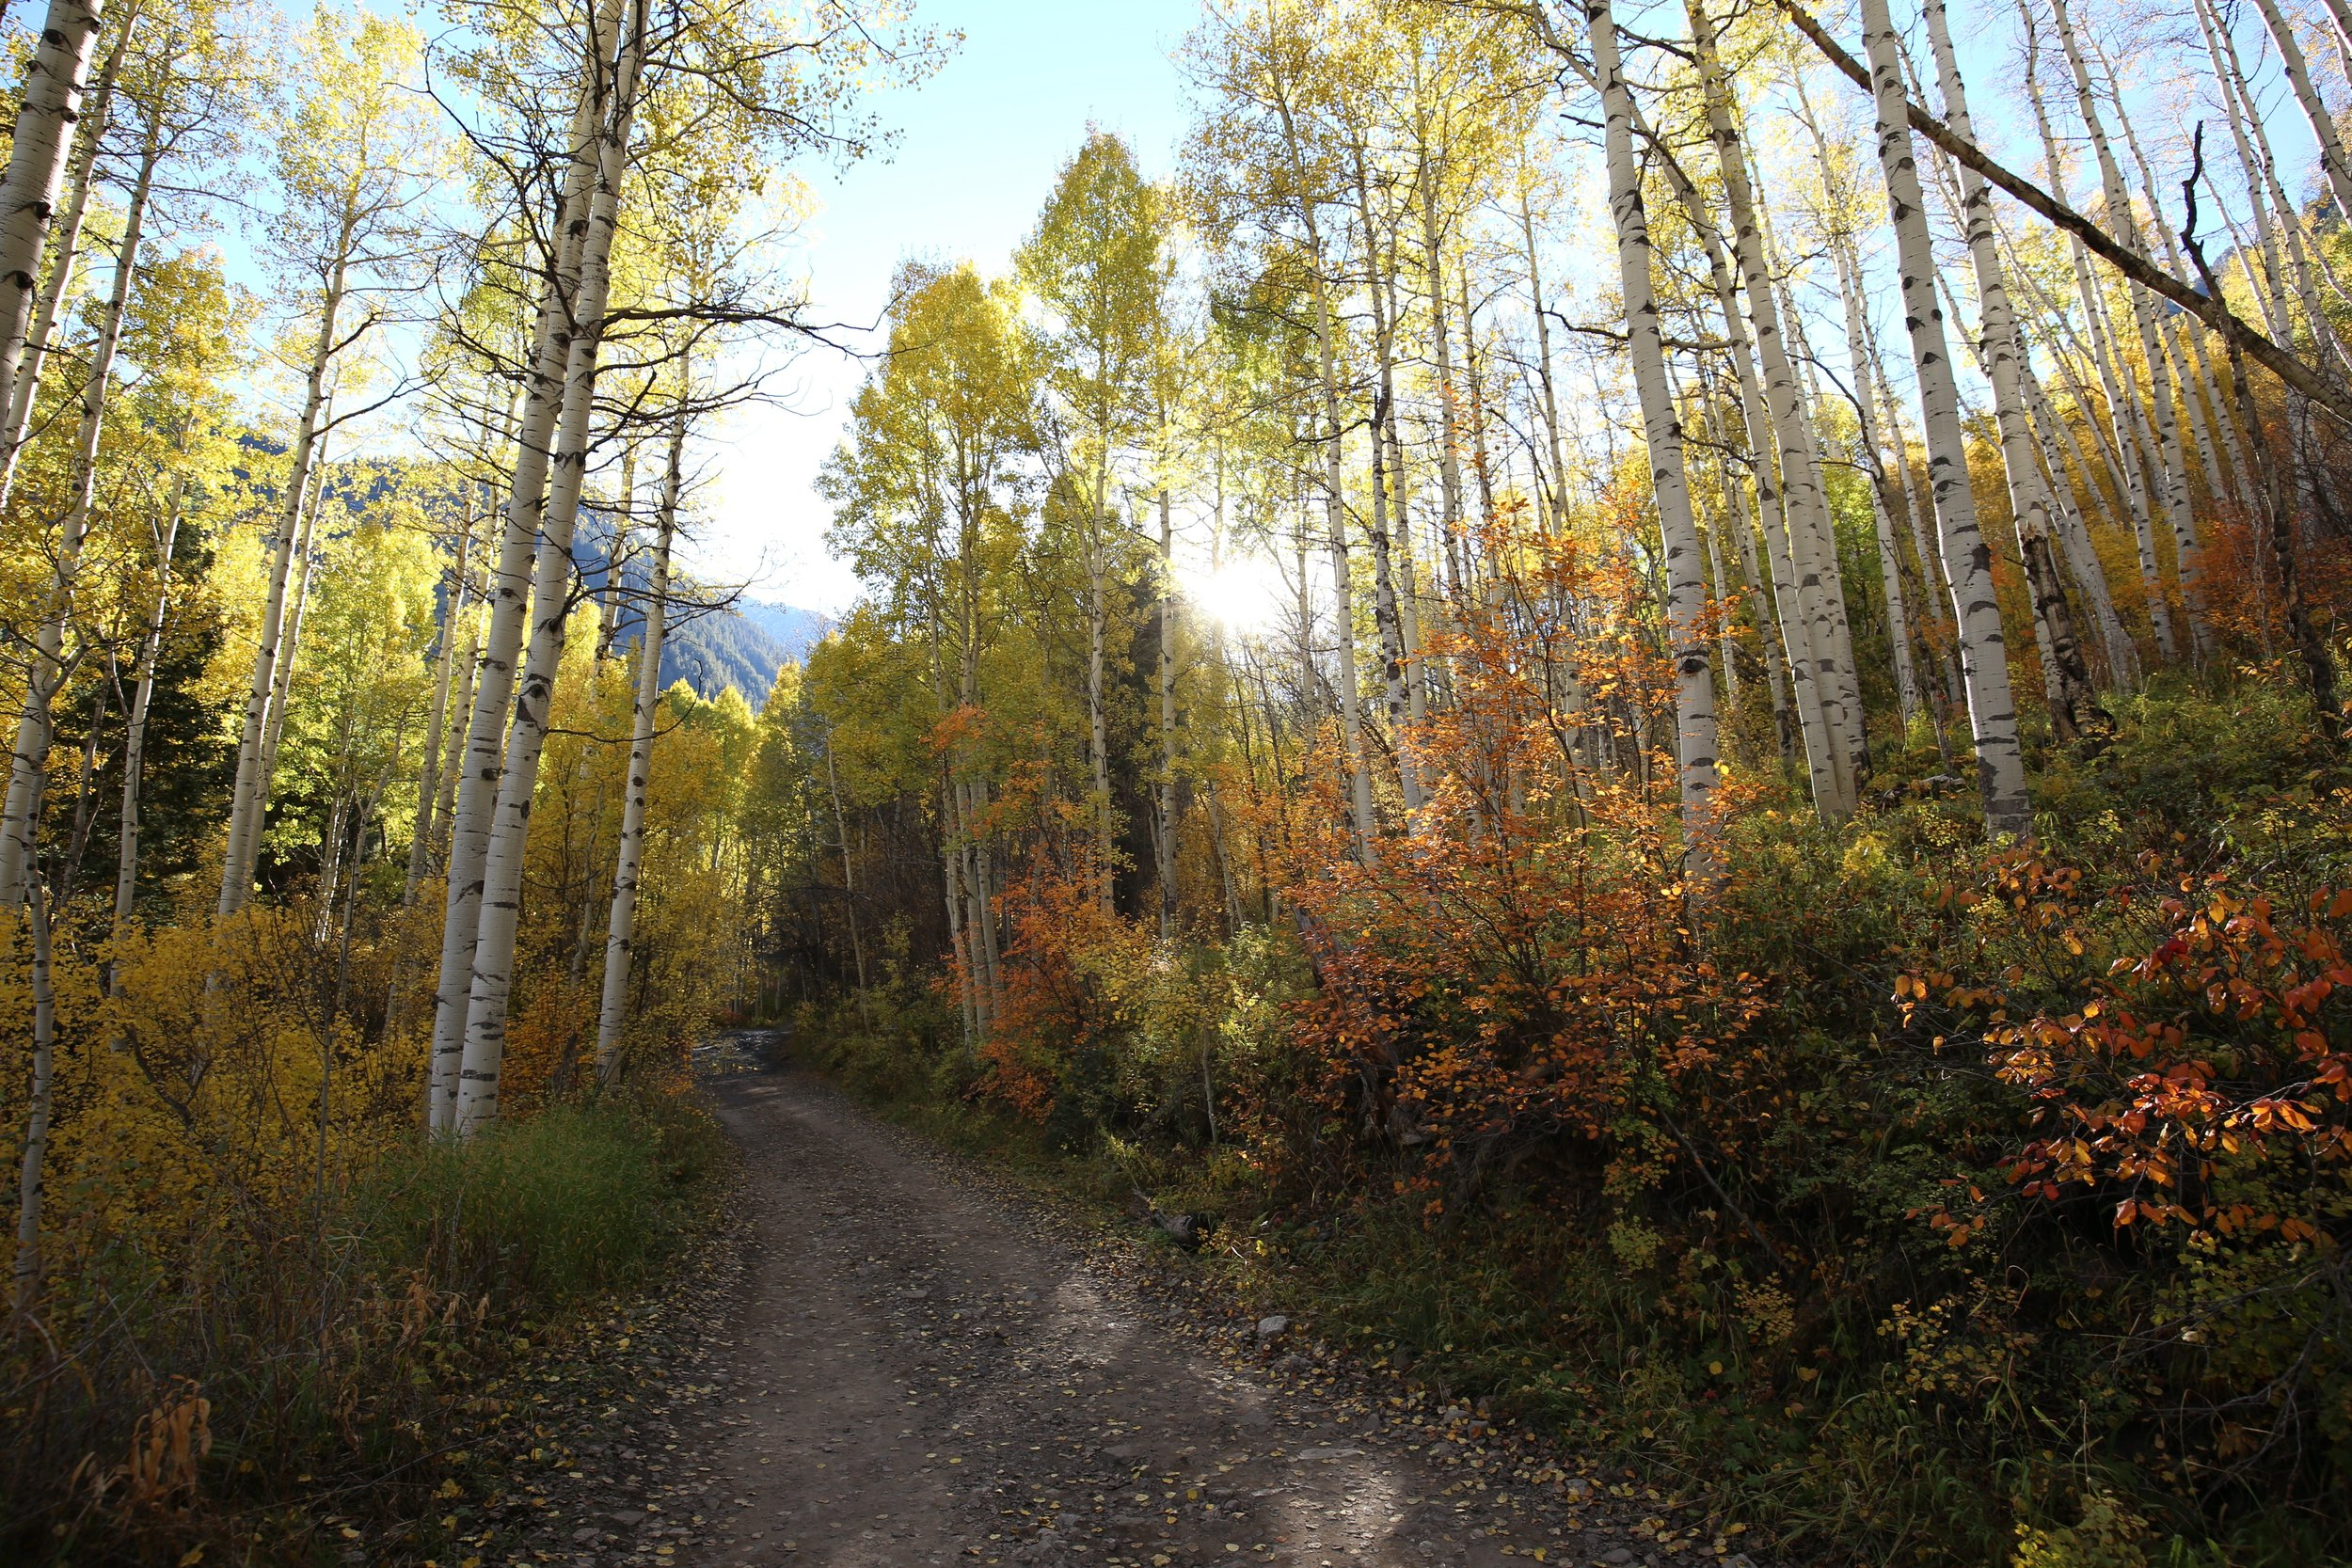 Fall in the the aspen groves of Colorado, at the golden hour.